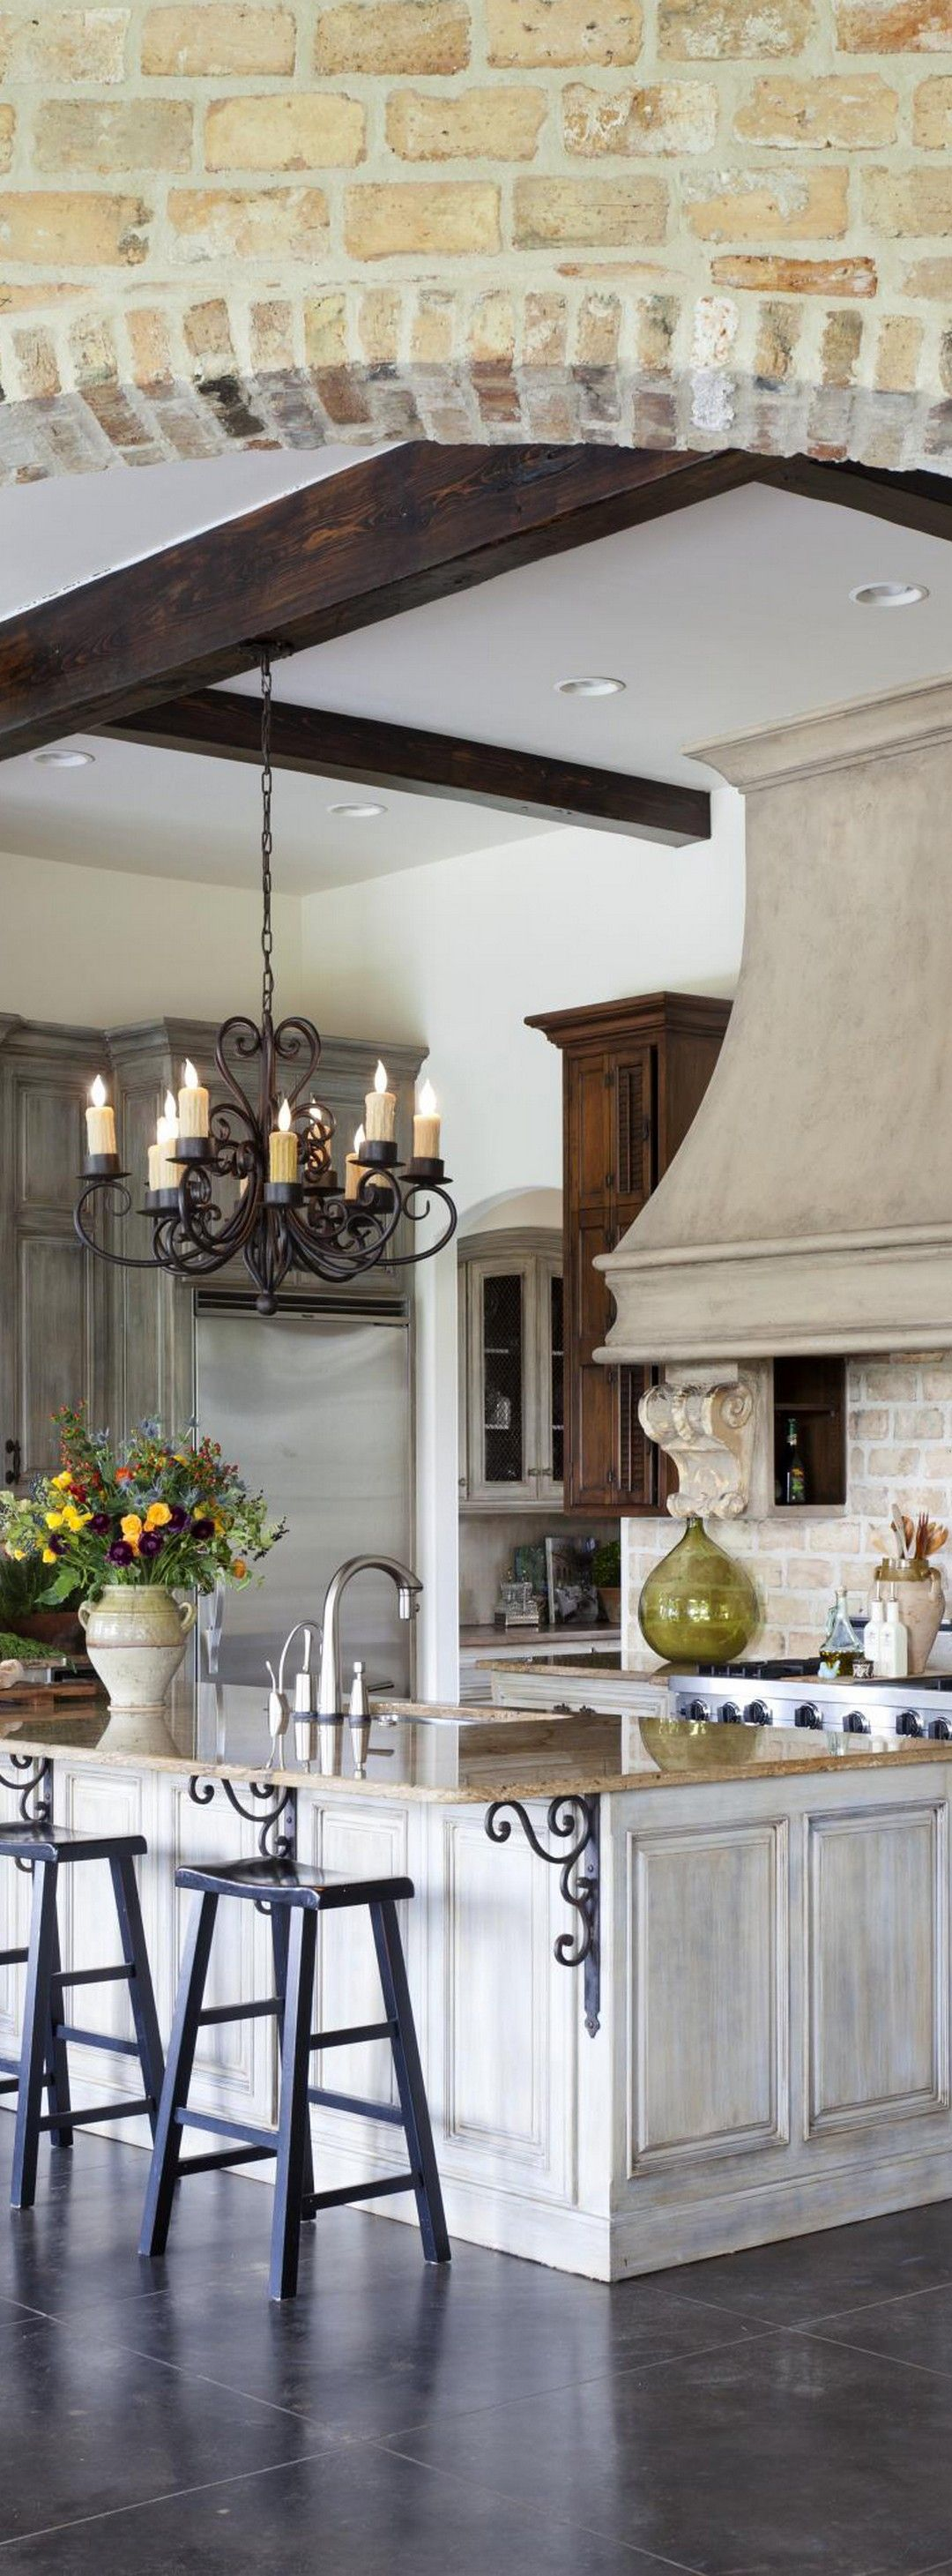 60 french country kitchen modern design ideas french country dining room french country on kitchen remodel french country id=64061